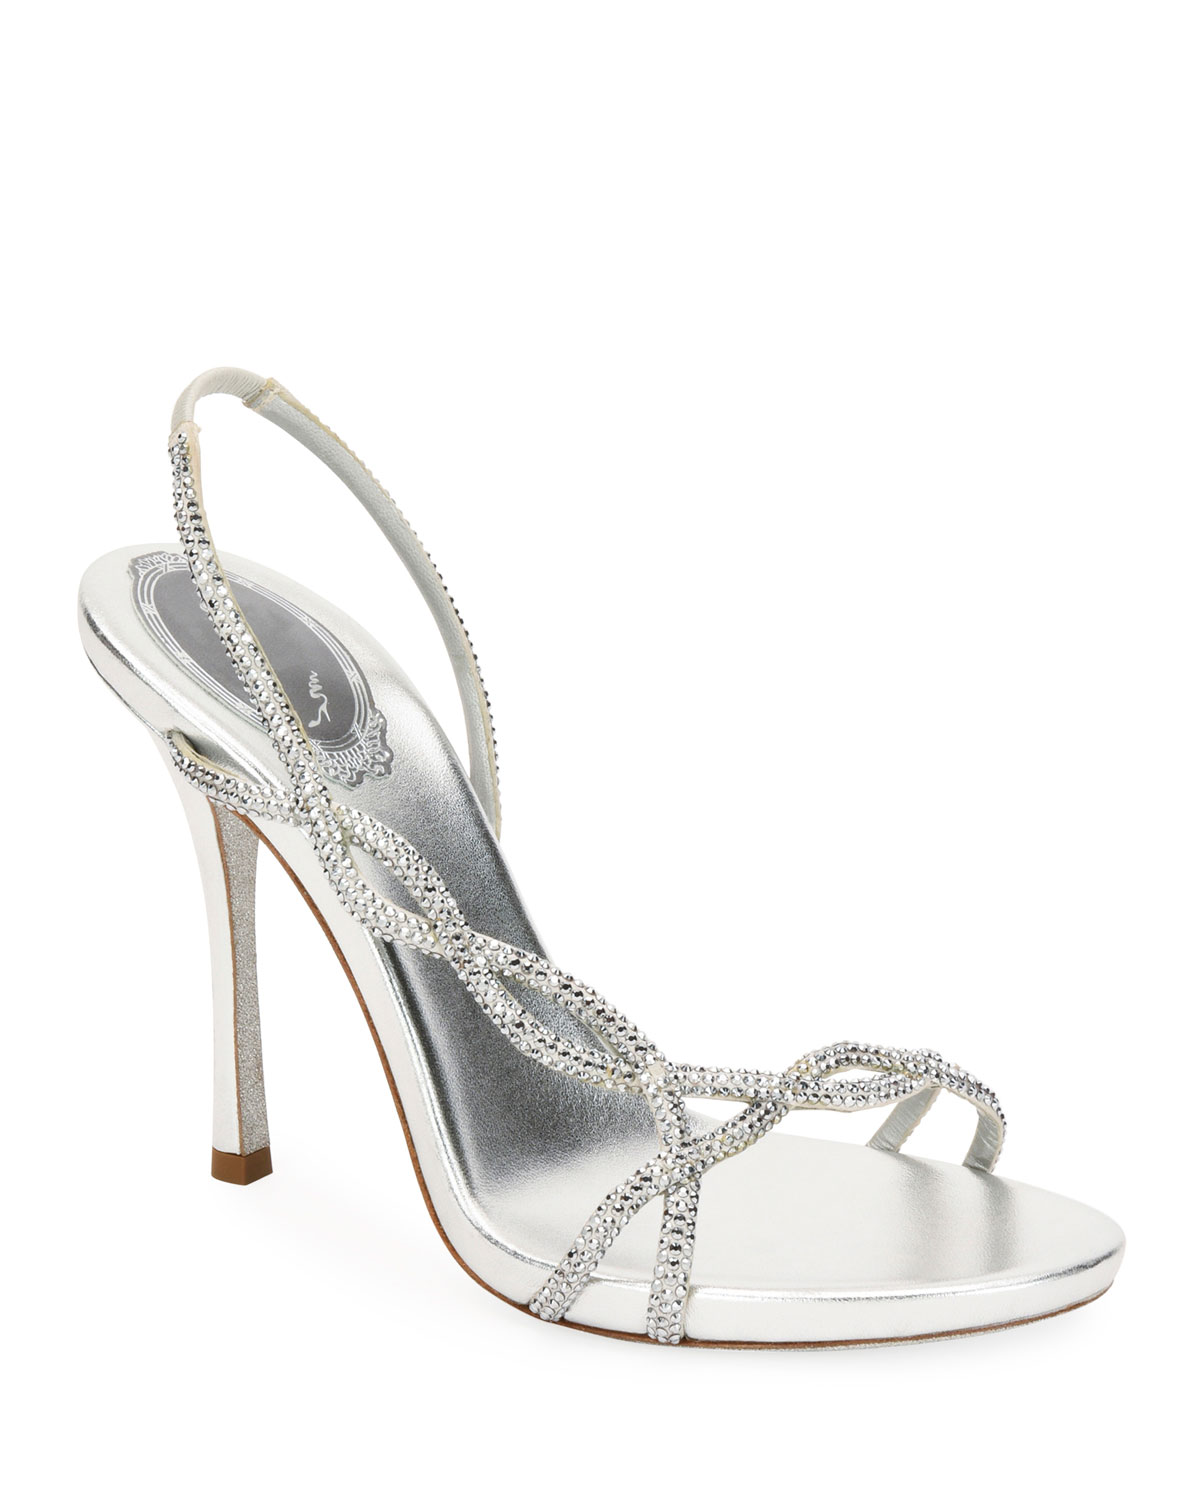 René Caovilla Sandals CRYSTAL-EMBELLISHED METALLIC SLINGBACK SANDALS